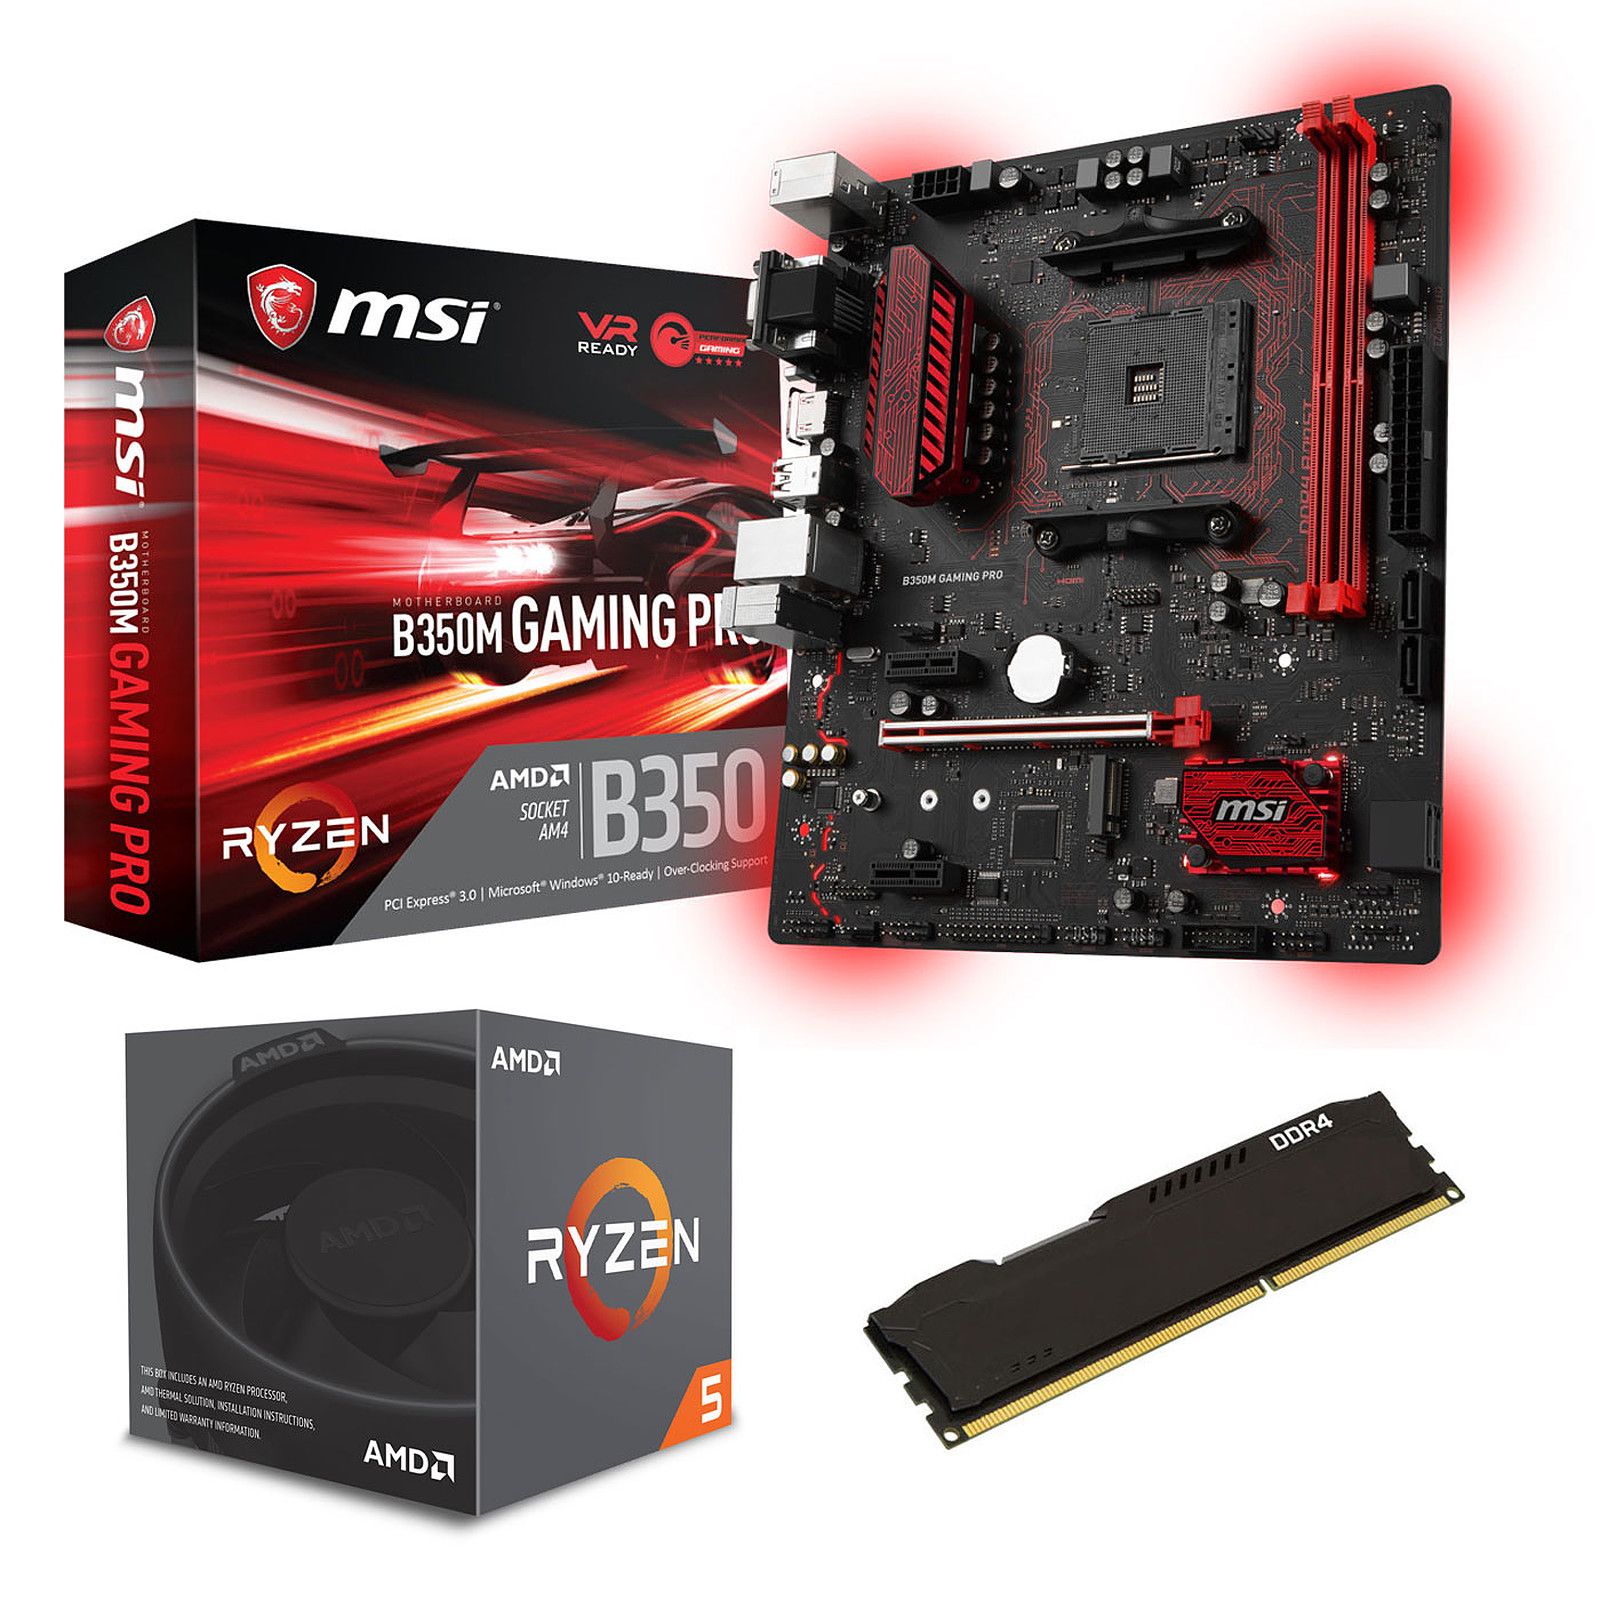 Kit Upgrade PC AMD Ryzen 5 1600 MSI B350M GAMING PRO 8 Go